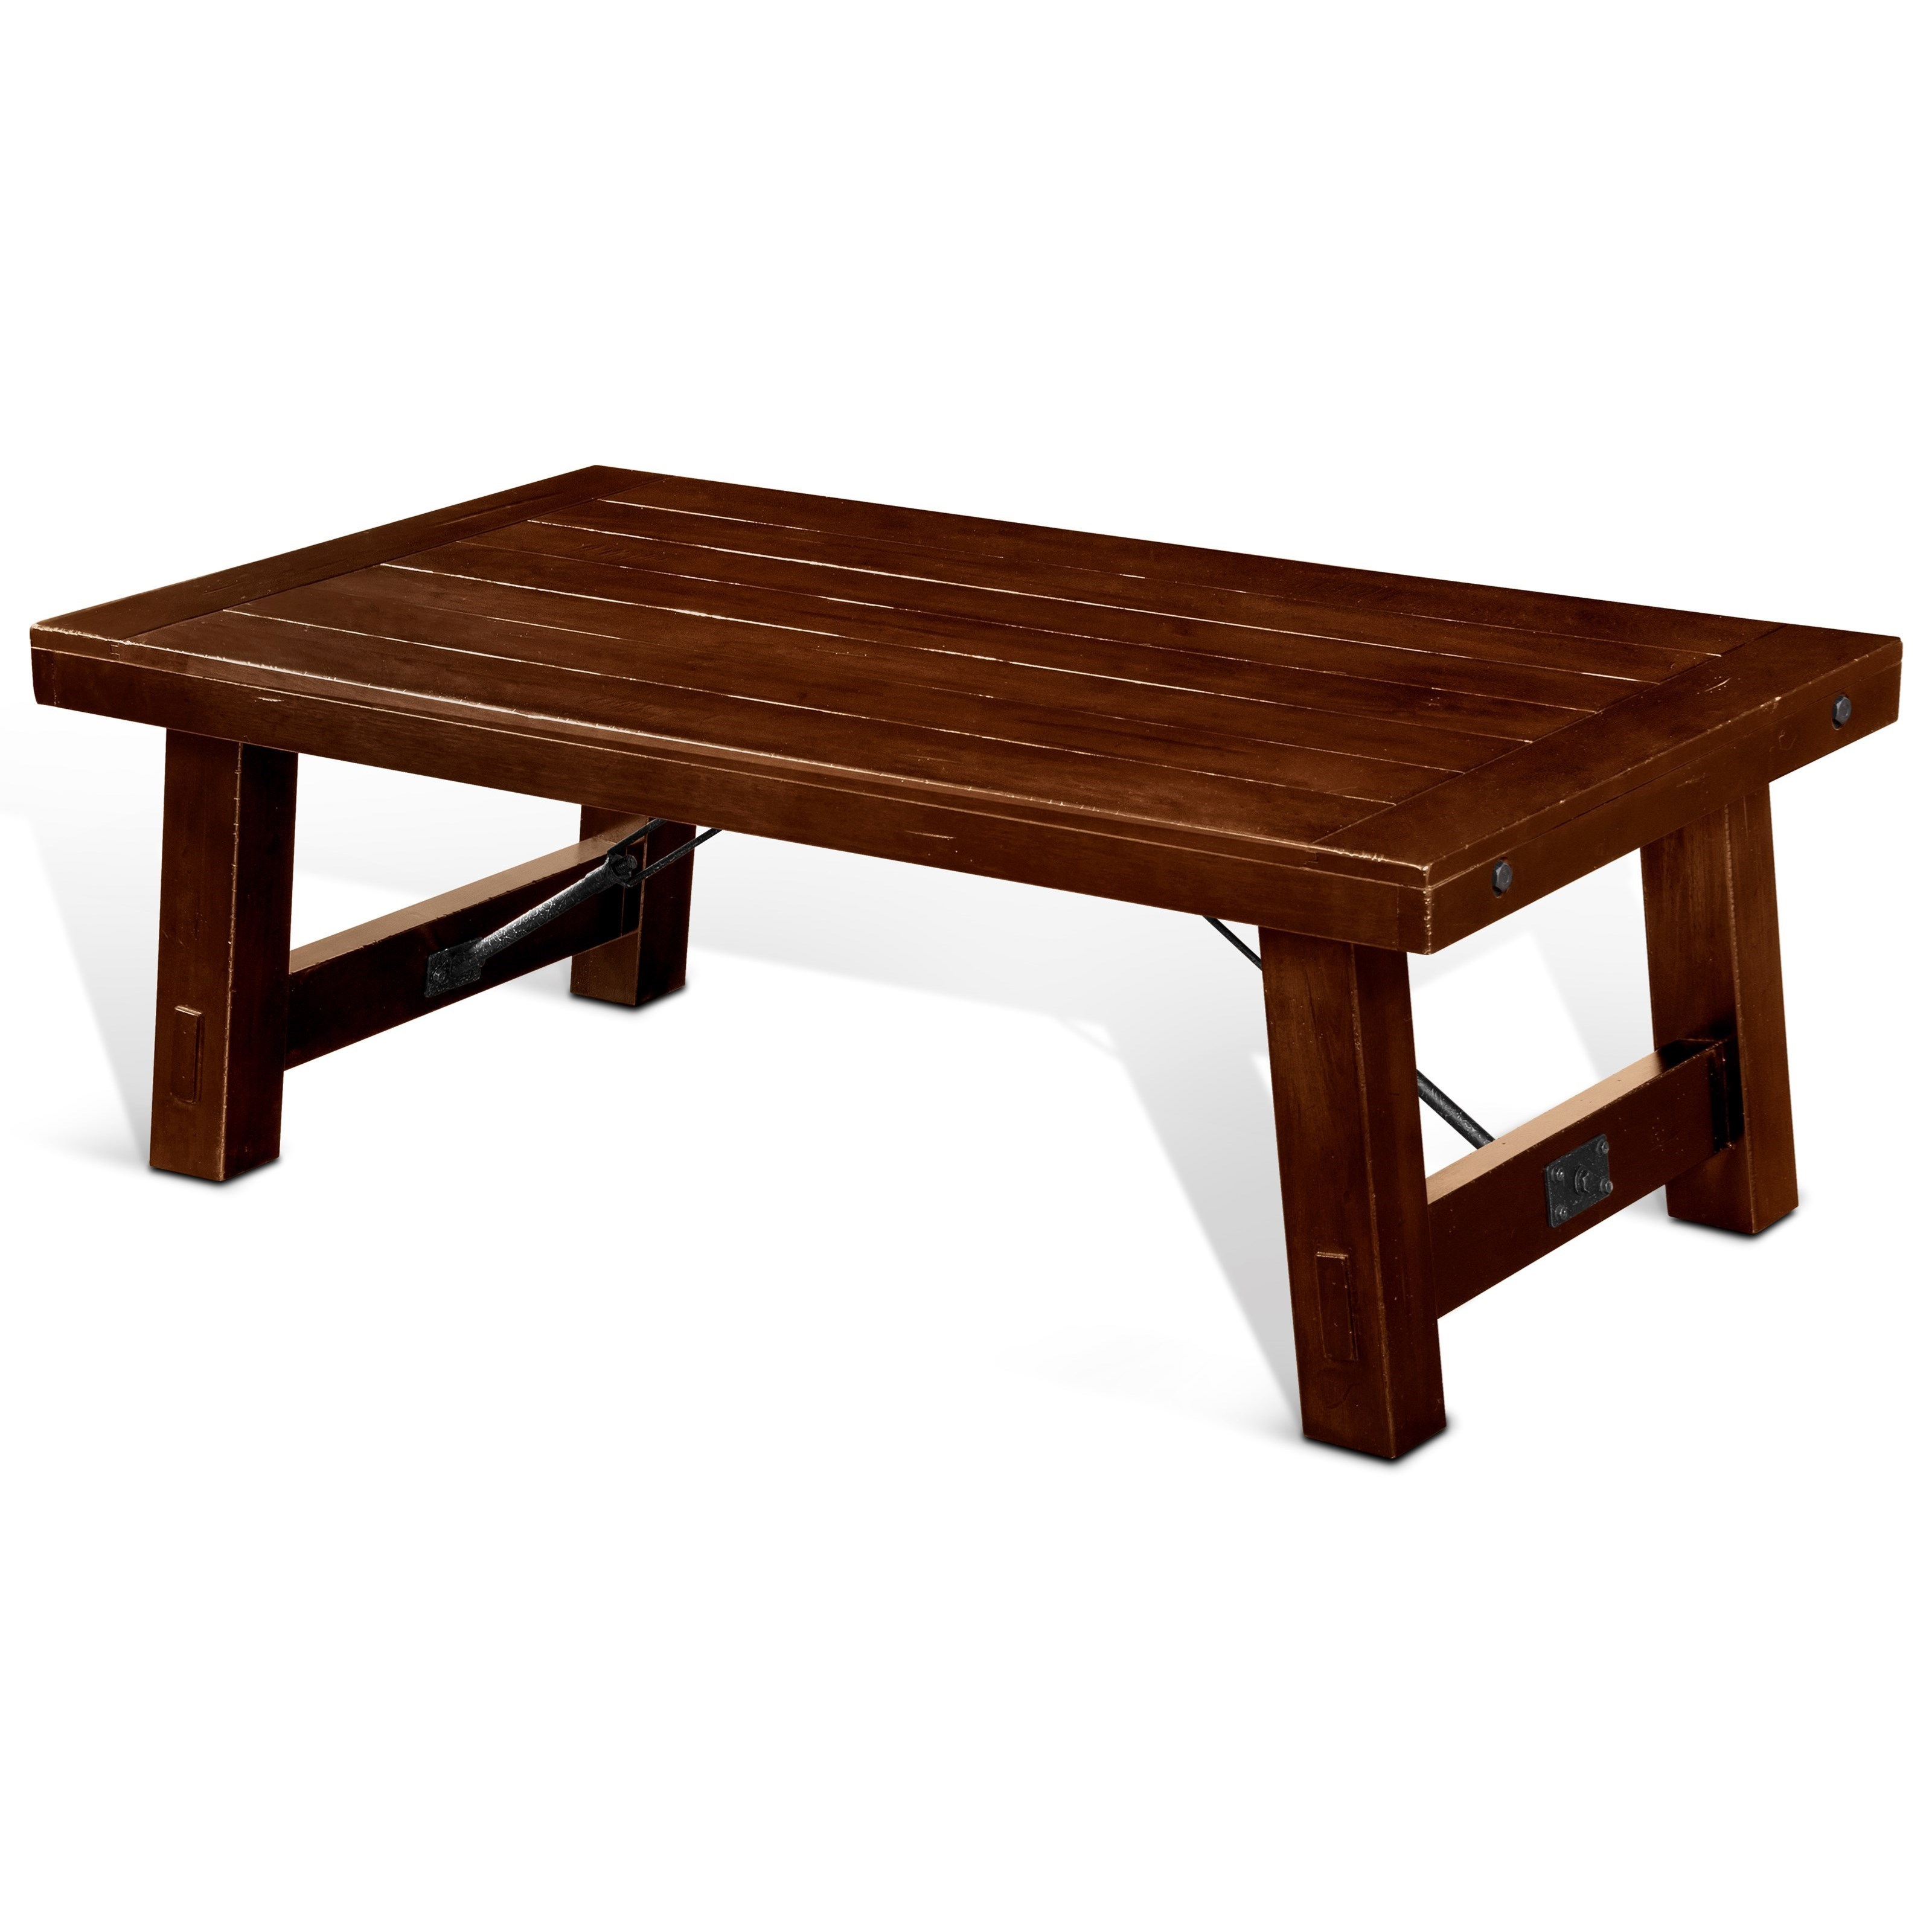 tuscany rustic coffee table with distressed finish by sunny designs at stoney creek furniture